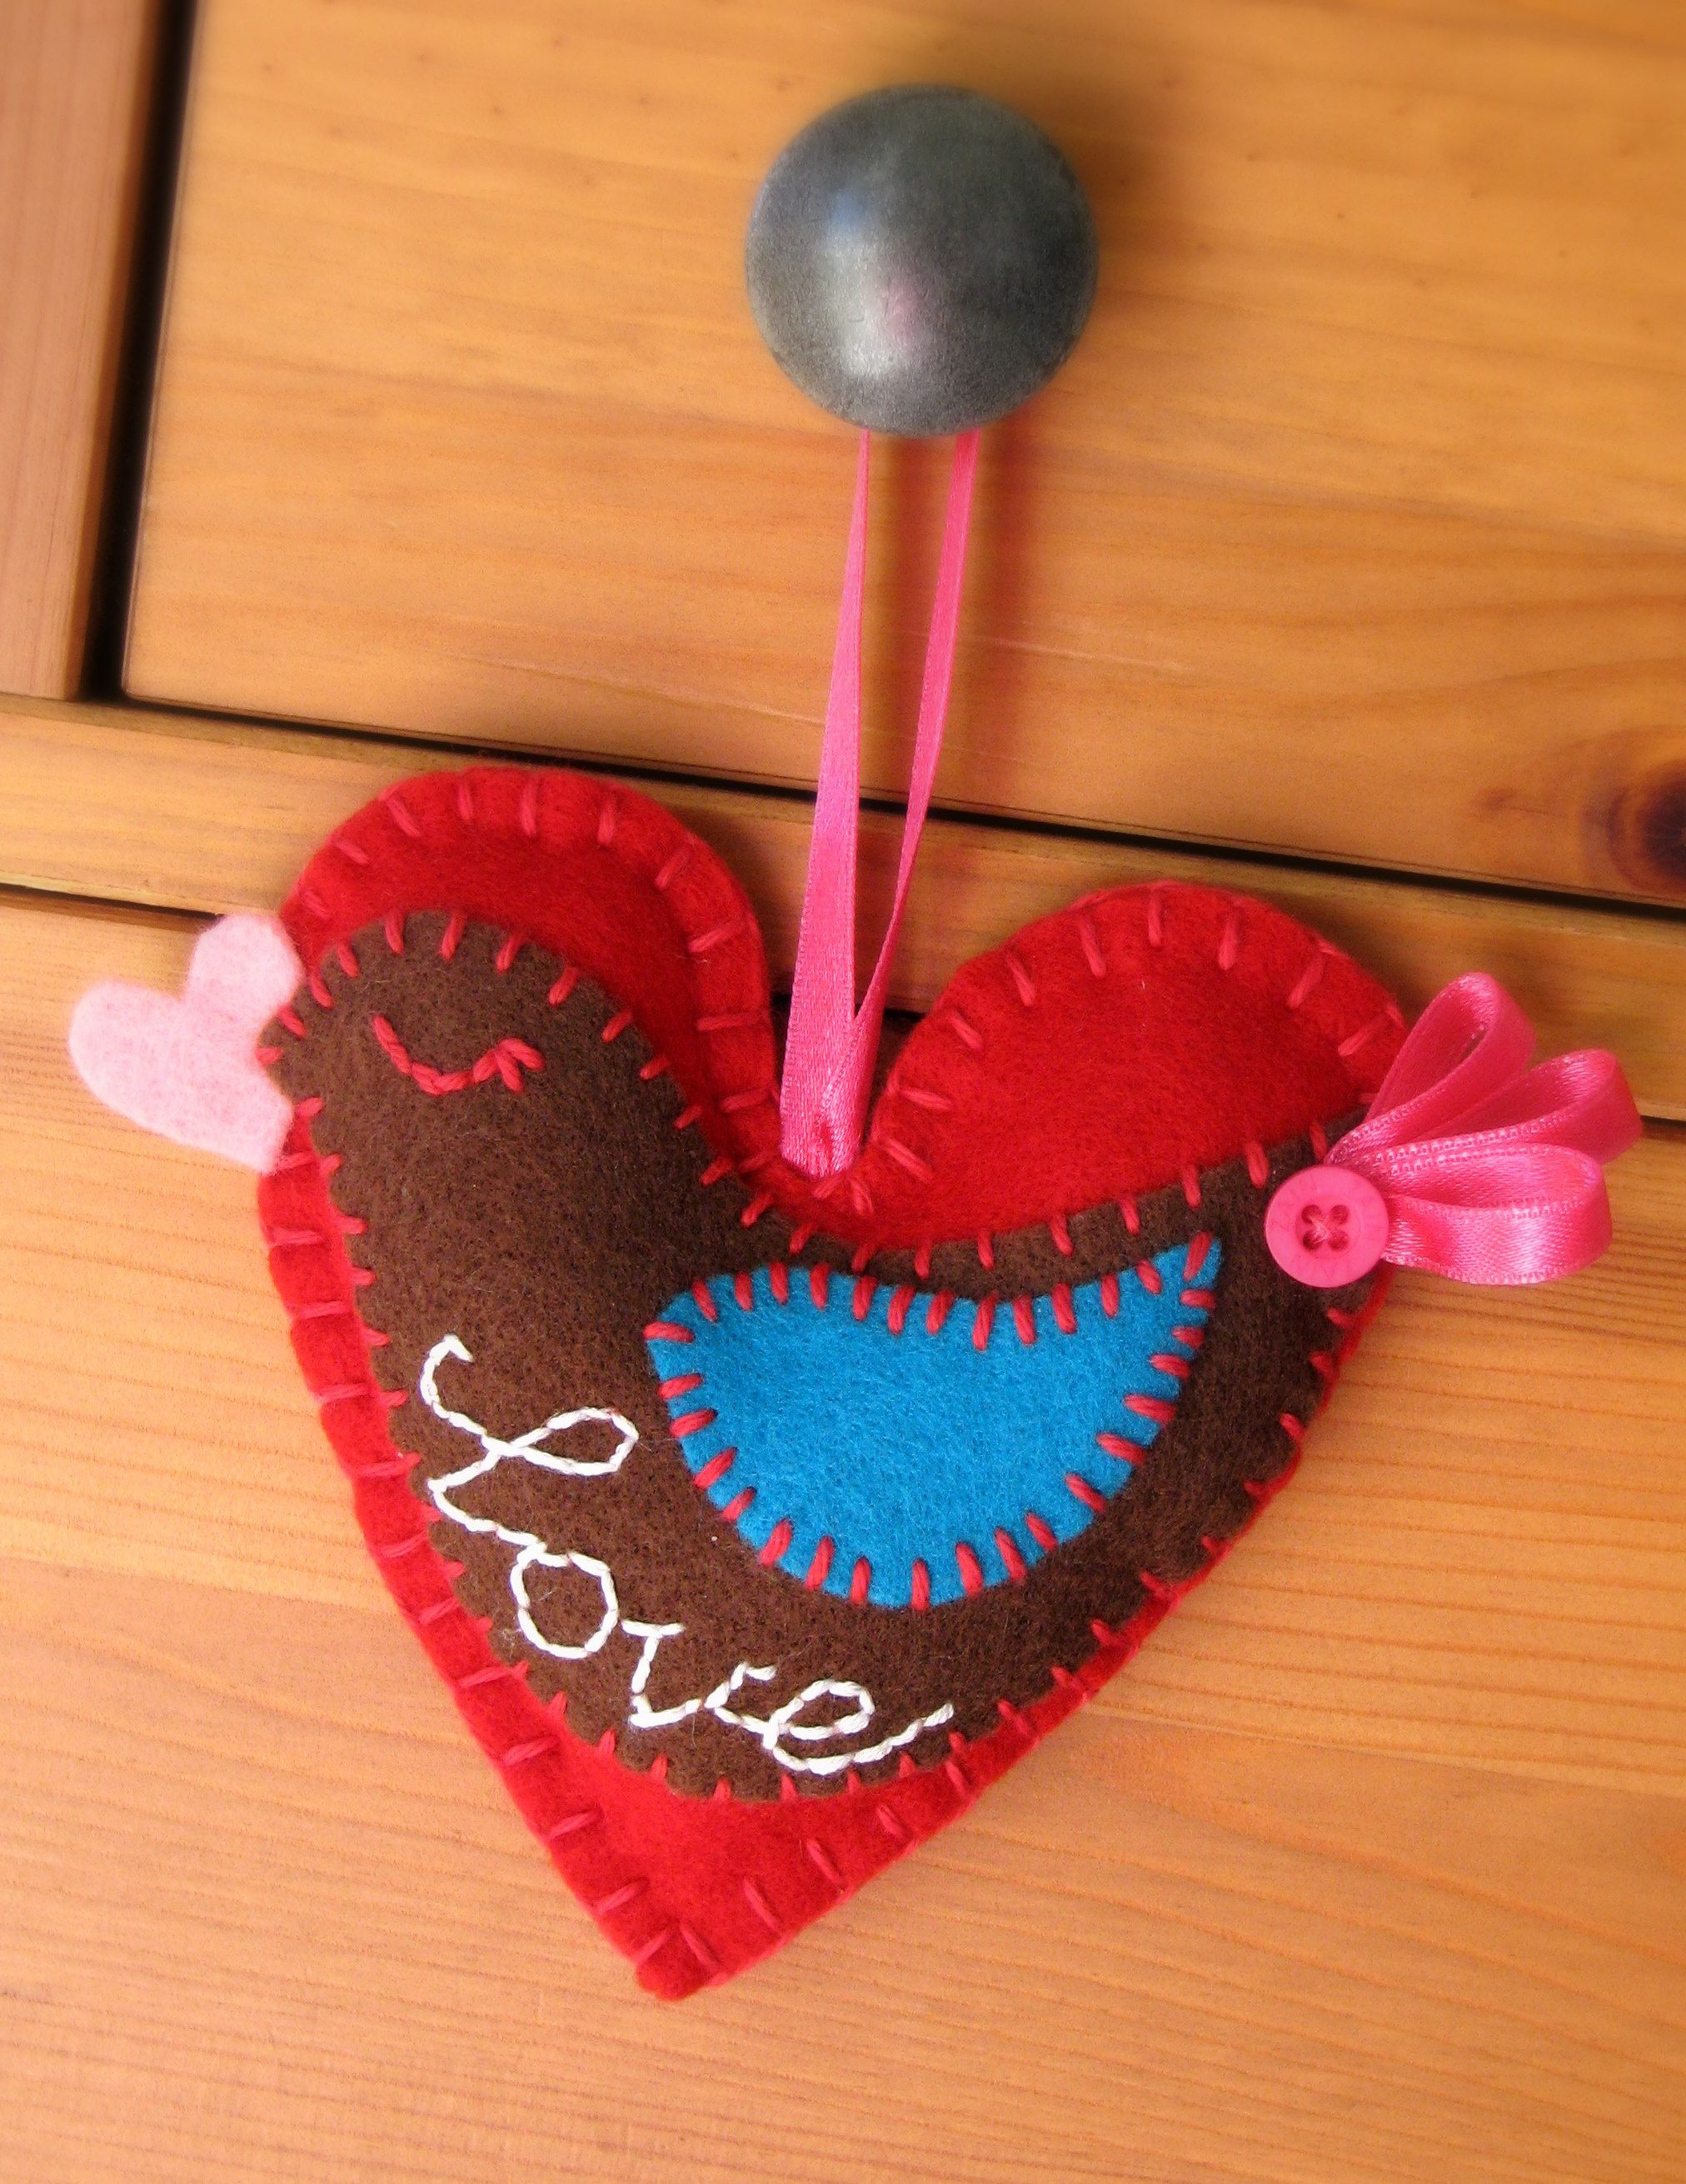 Felt Bird Heart that I made with the word Love